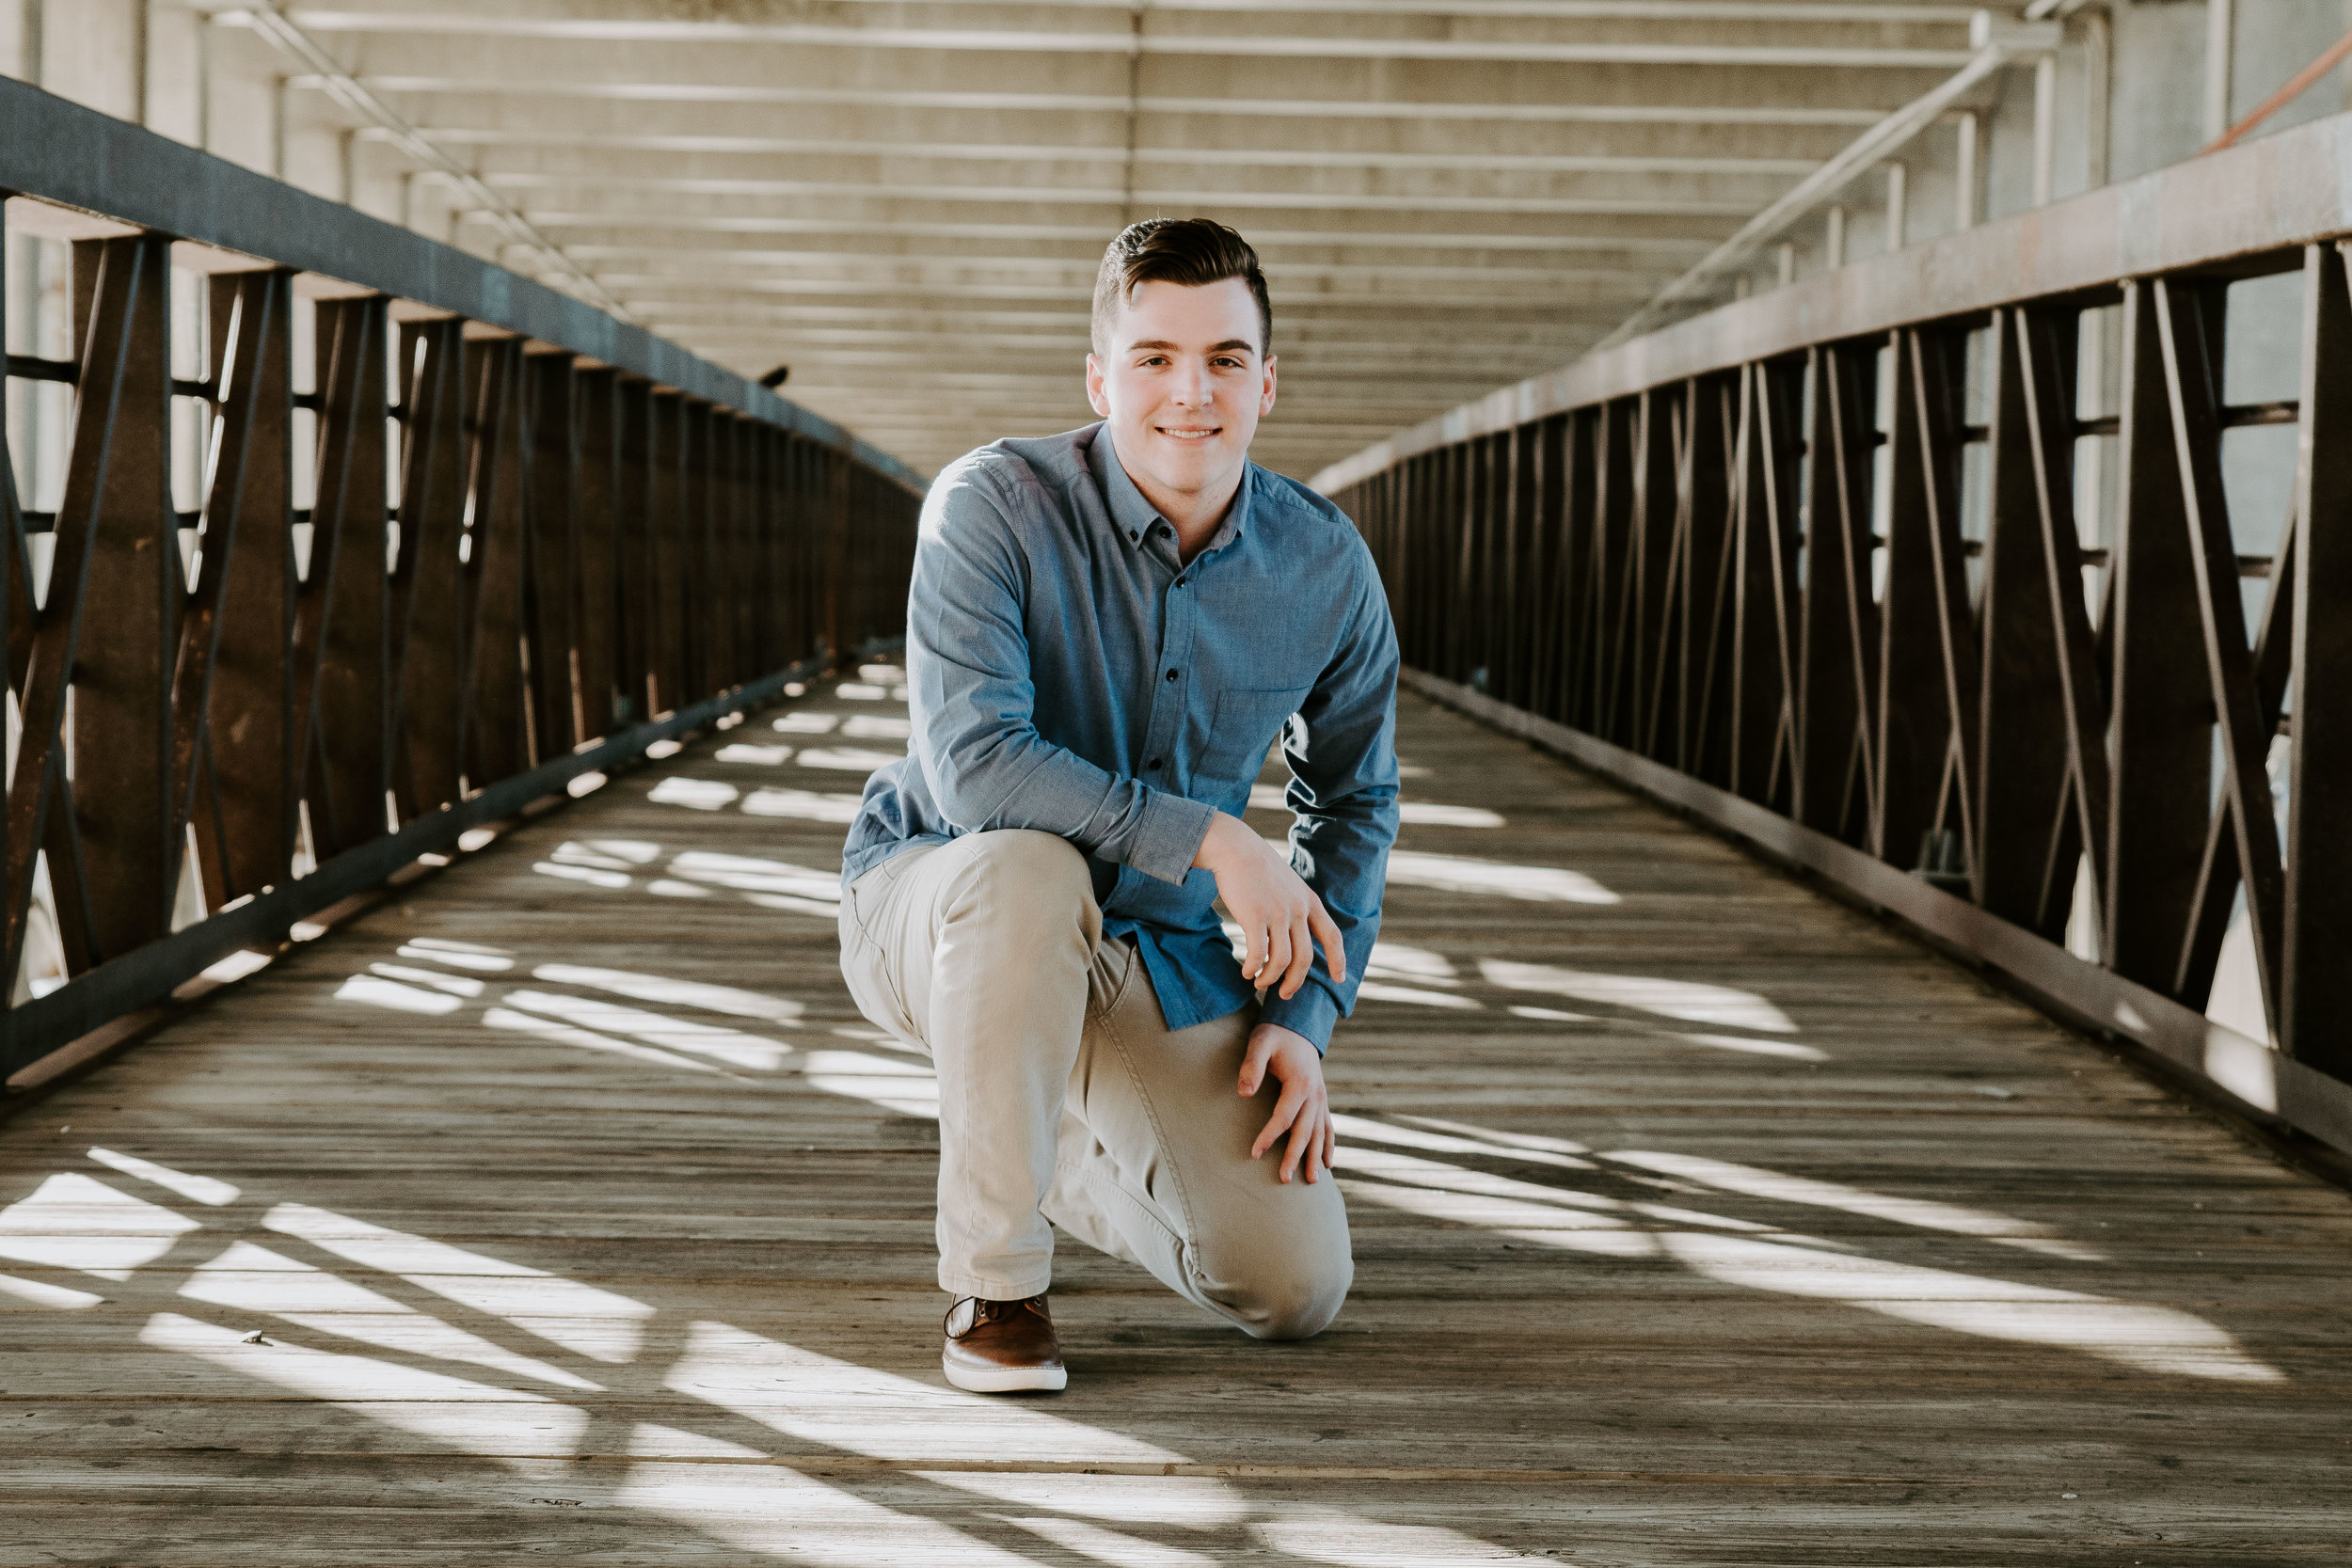 This is Austin, the oldest son and also graduating this year. Of course we tossed in a couple senior shots. This covered bridge was a pretty cool spot.